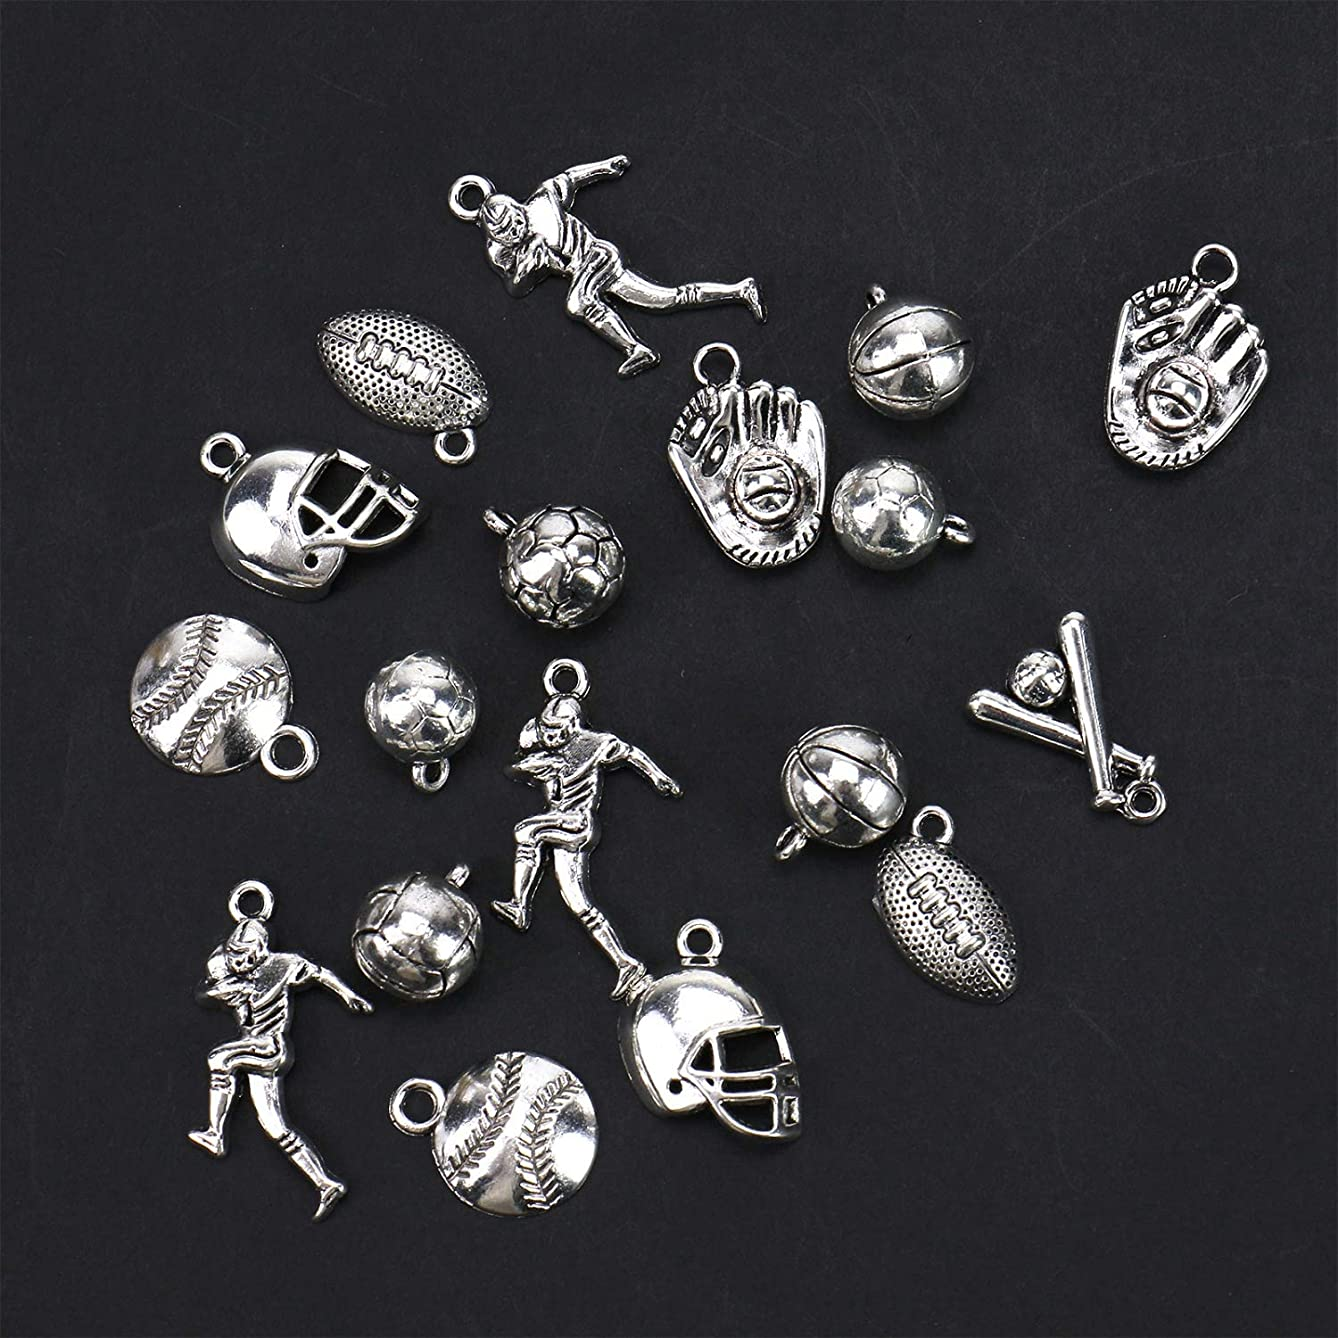 Monrocco Alloy Ball Games Sports Charm Pendant DIY Jewelry Making Accessaries(30pcs,Antique Silver)